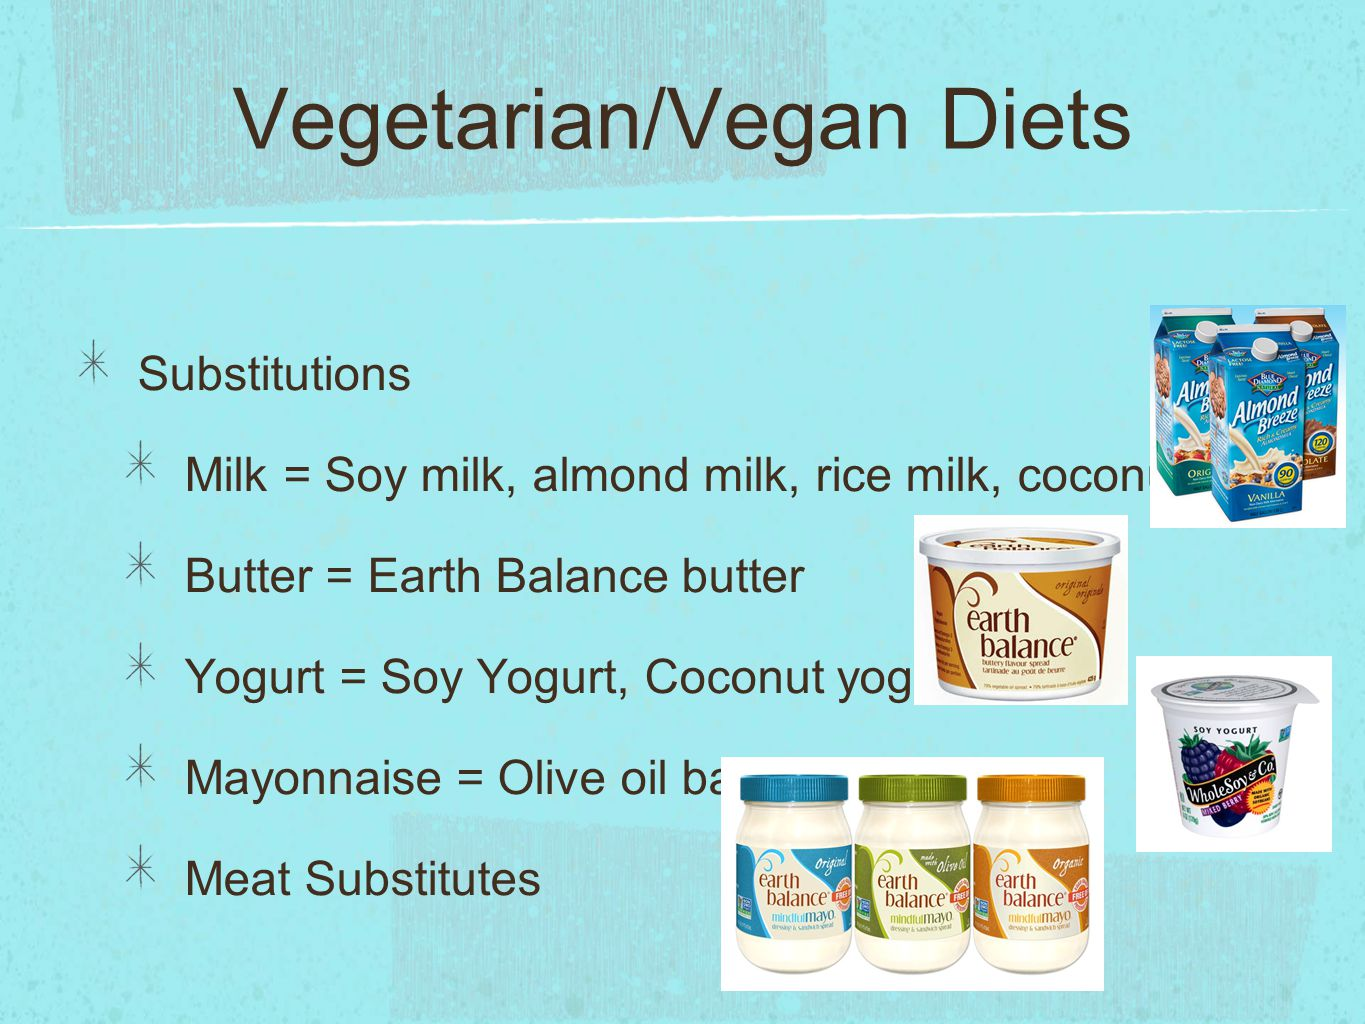 Macronutrients Humans consume in the largest quantities and provide bulk of energy.